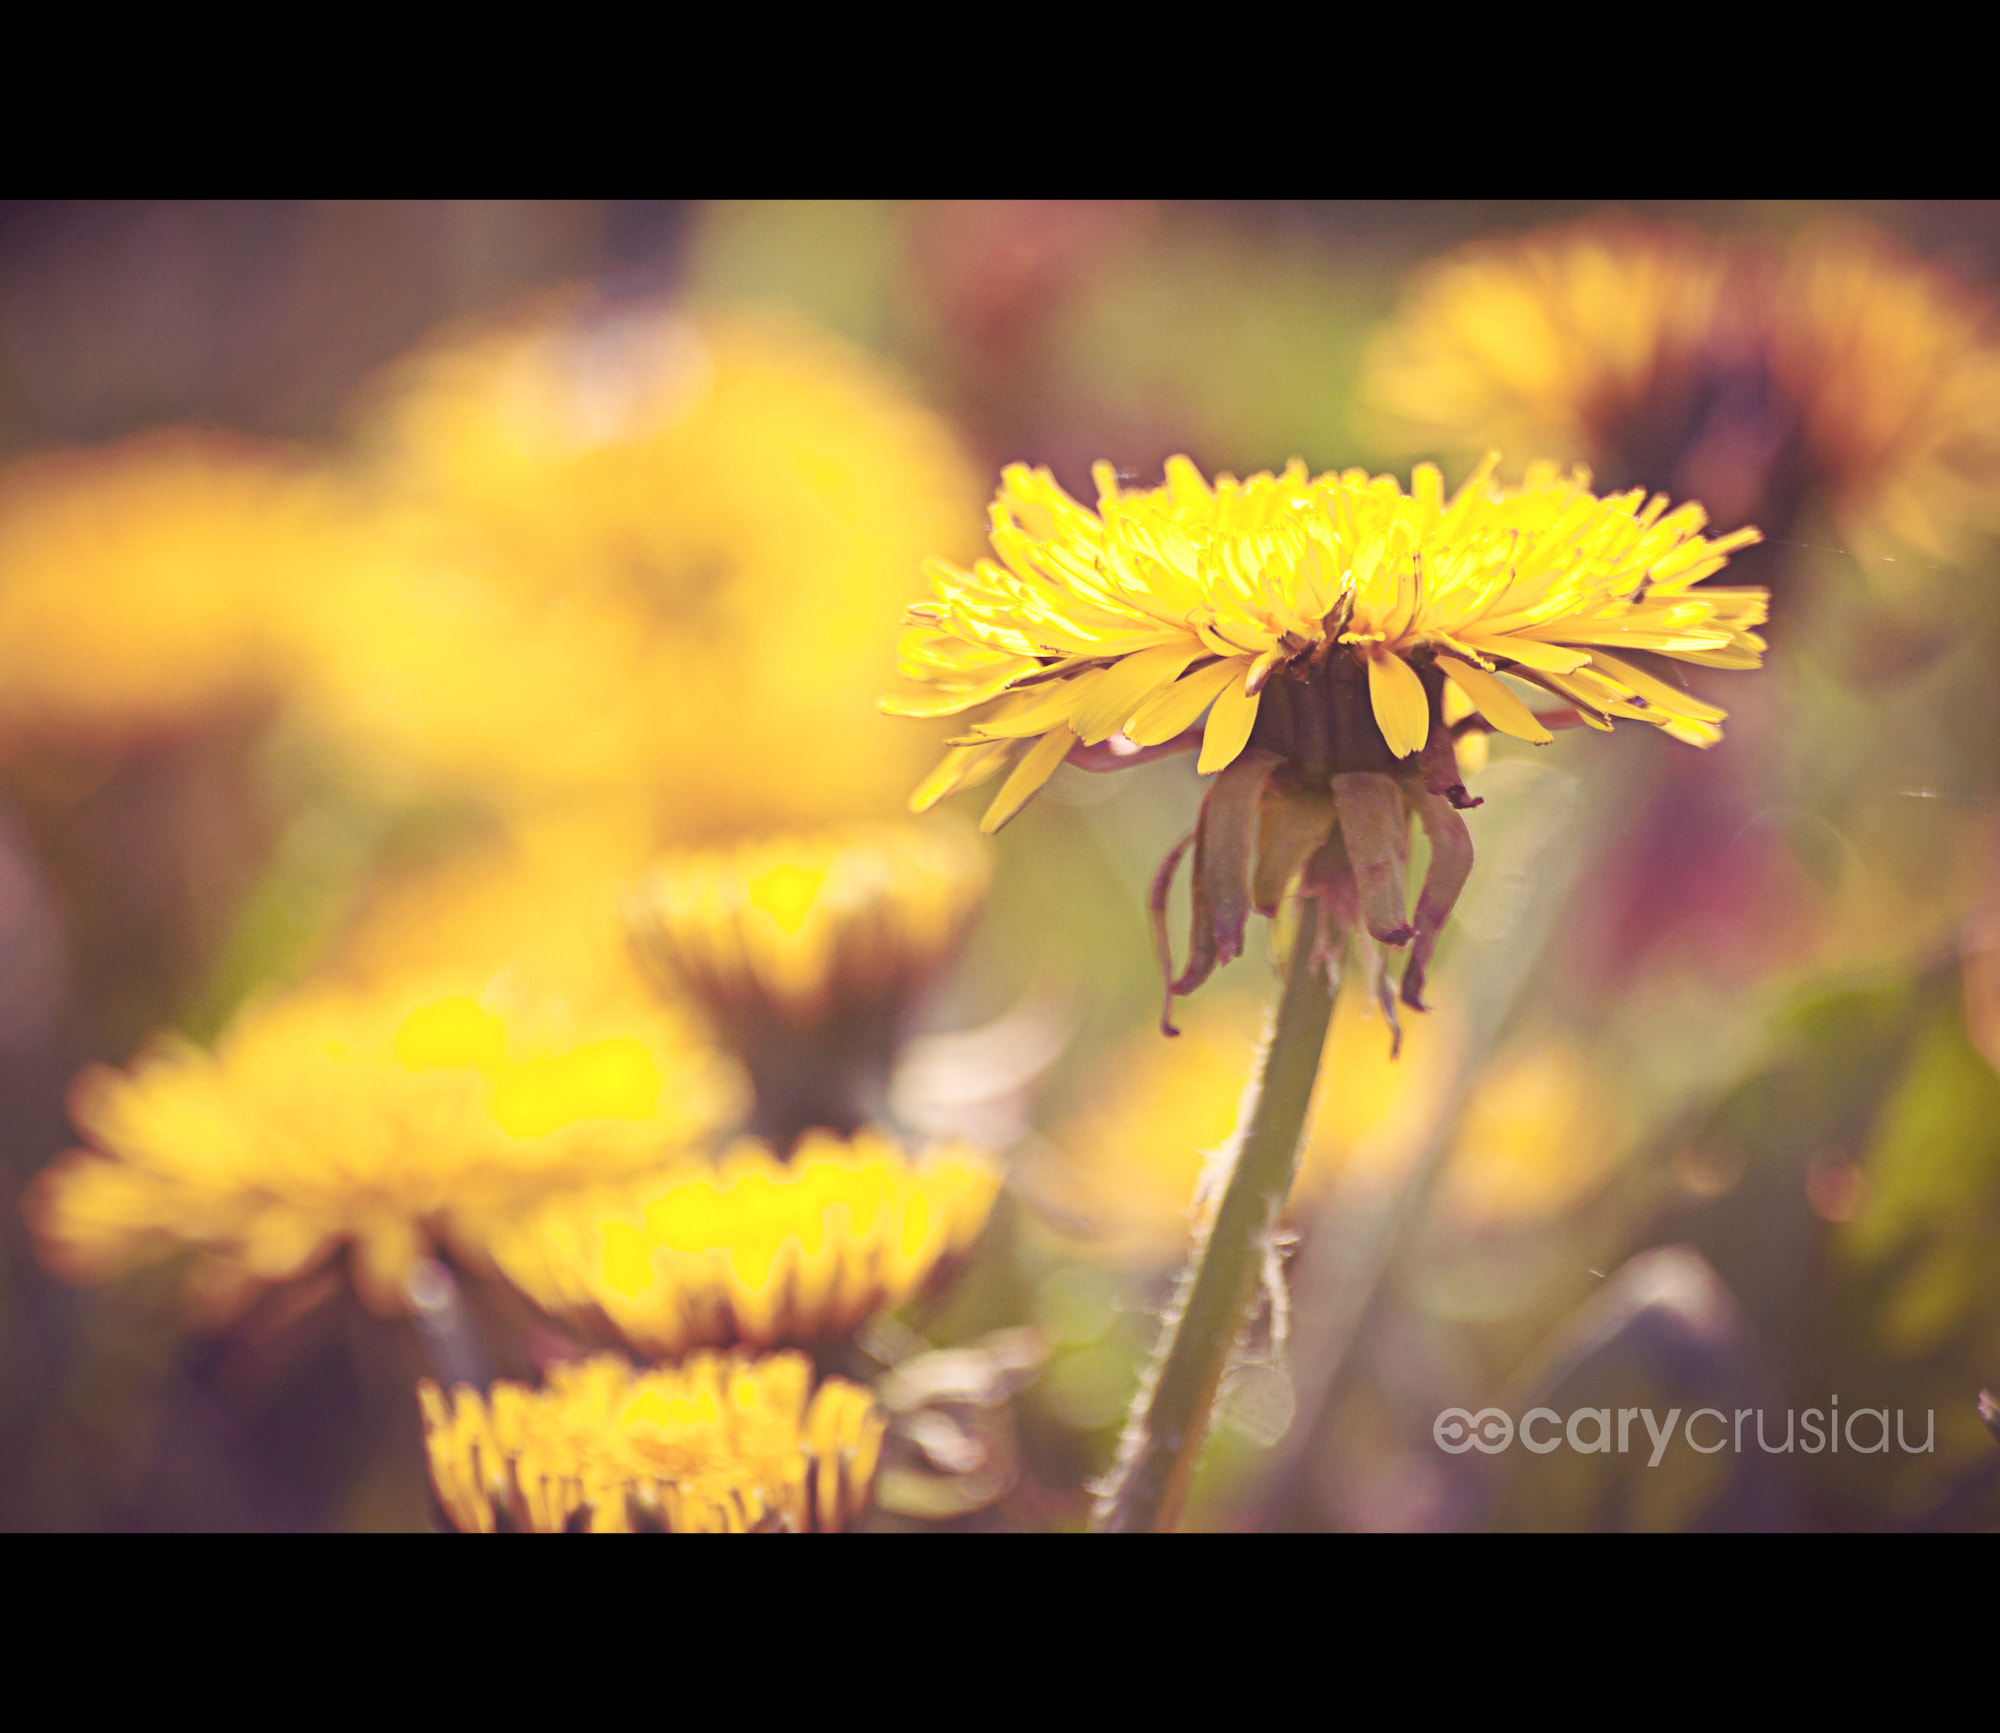 Photograph Dandelions by Cary Crusiau on 500px